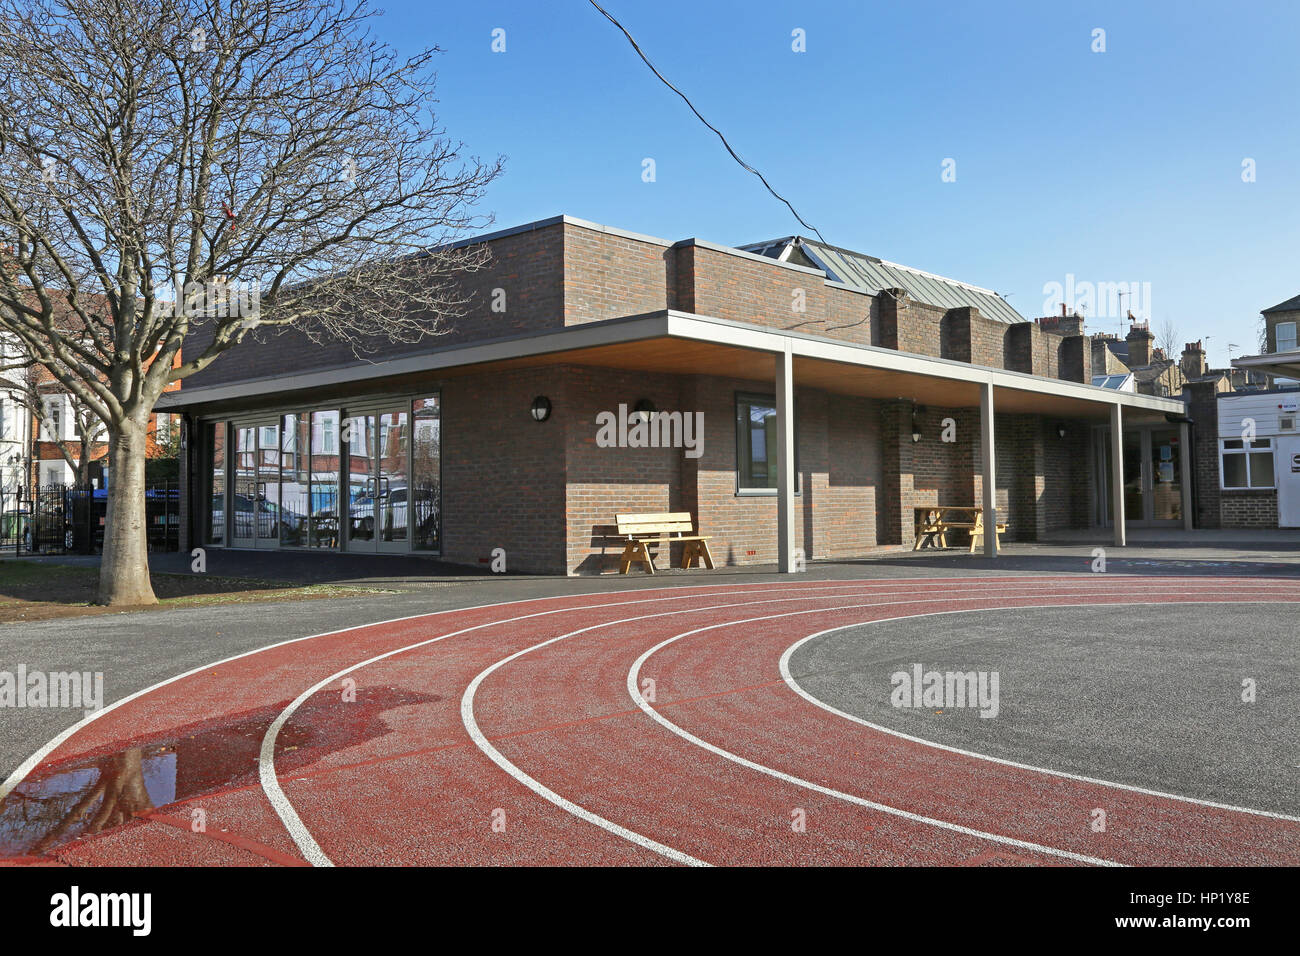 A modern extension to a traditional Victorian London school building, UK. Shows all-weather running track in foreground - Stock Image